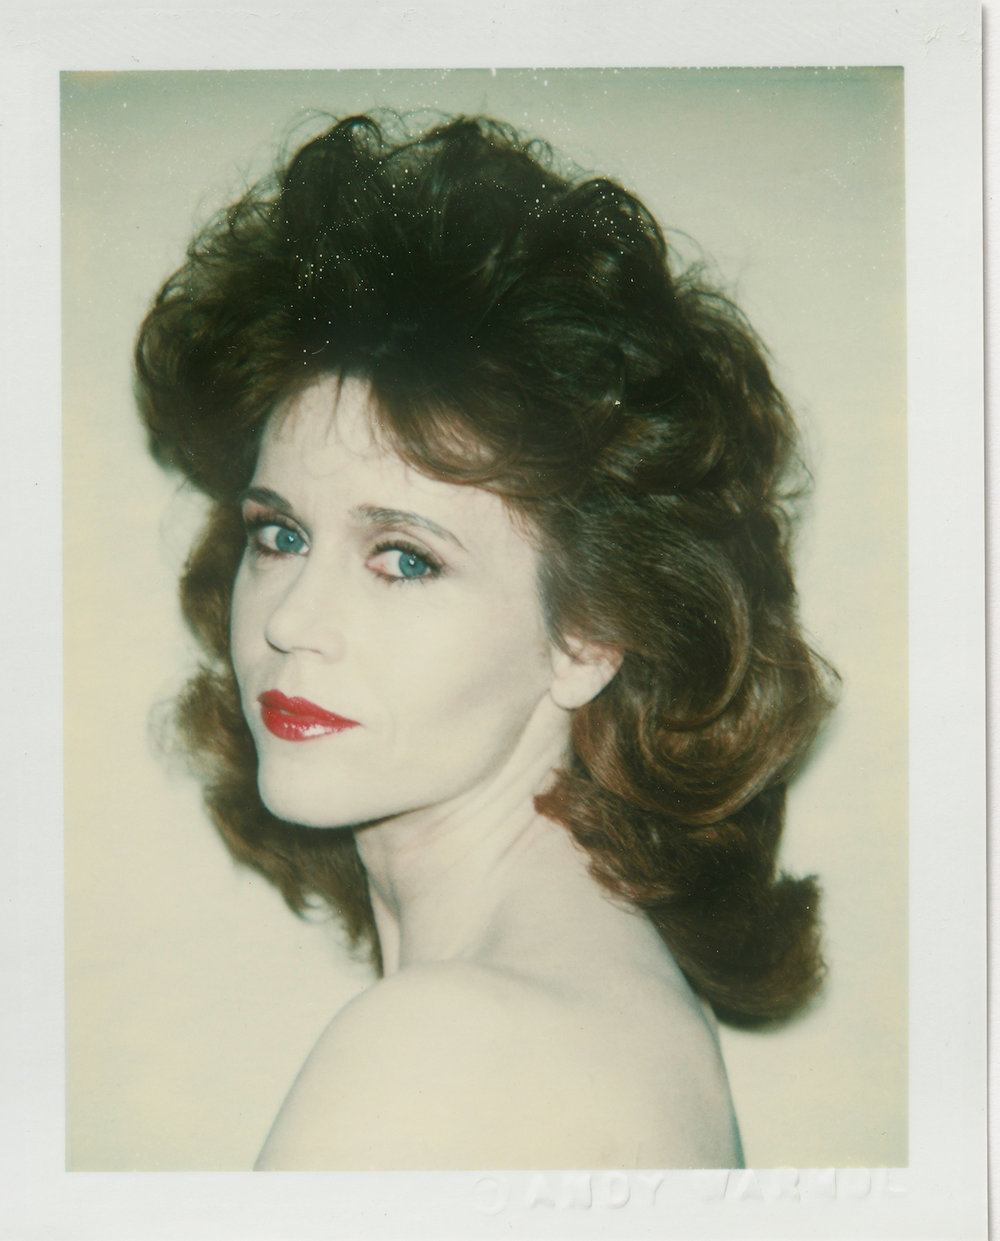 Jane Fonda, 1982 © 2018 The Andy Warhol Foundation for the Visual Arts, Inc. Licensed by DACS, London, courtesy BASTIAN, London © 2018 The Andy Warhol Foundation for the Visual Arts, Inc. Licensed by DACS, London, courtesy BASTIAN, London. From the exhibition Andy Warhol Polaroid Pictures at BASTIAN, London, 02 February – 13 April 2019, galeriebastian.com